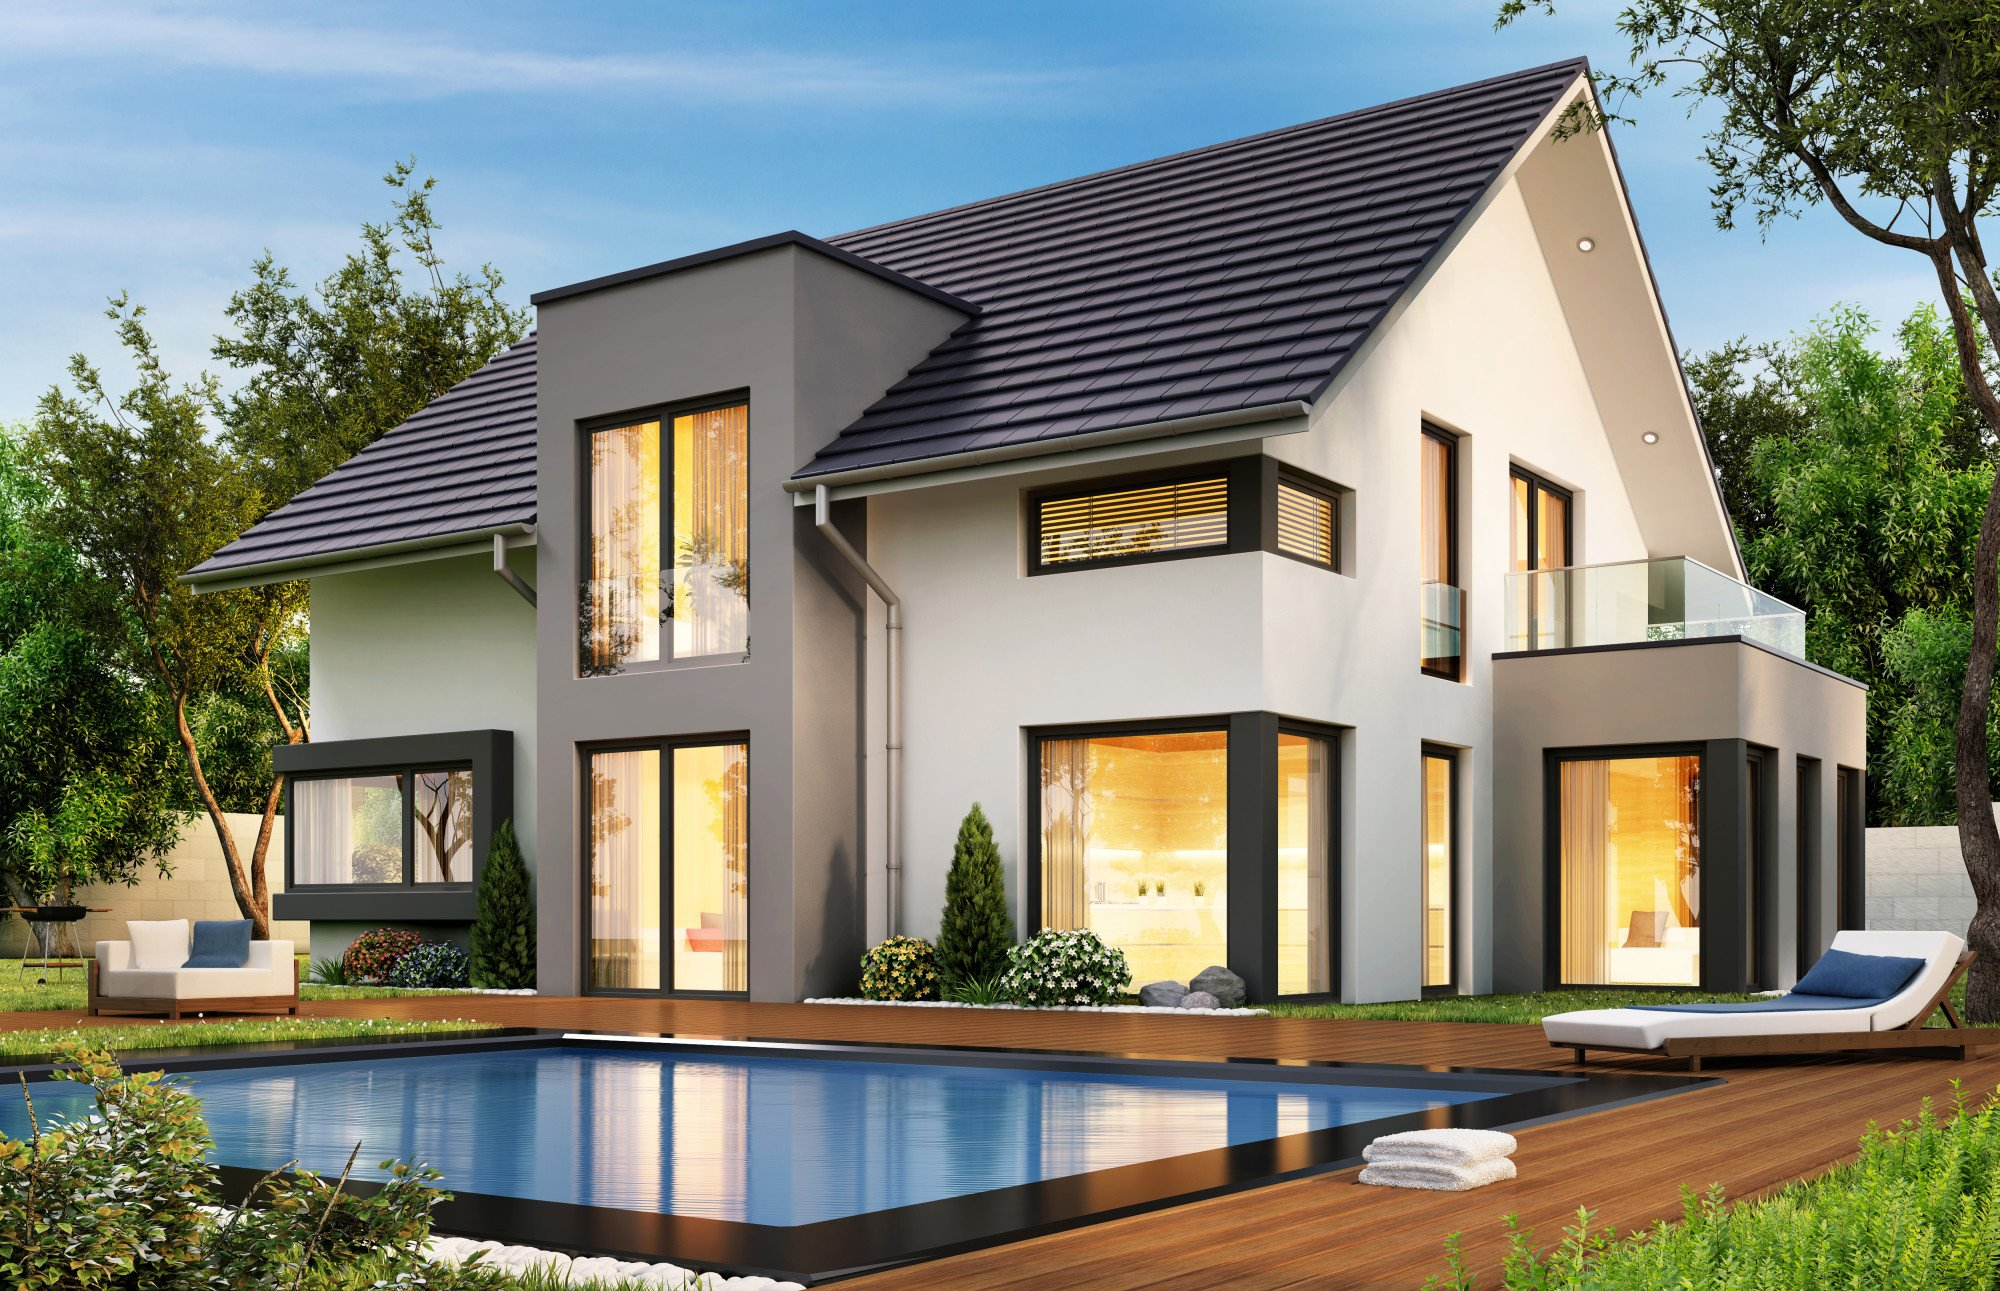 What Are the Different Factors That Determine House Prices?